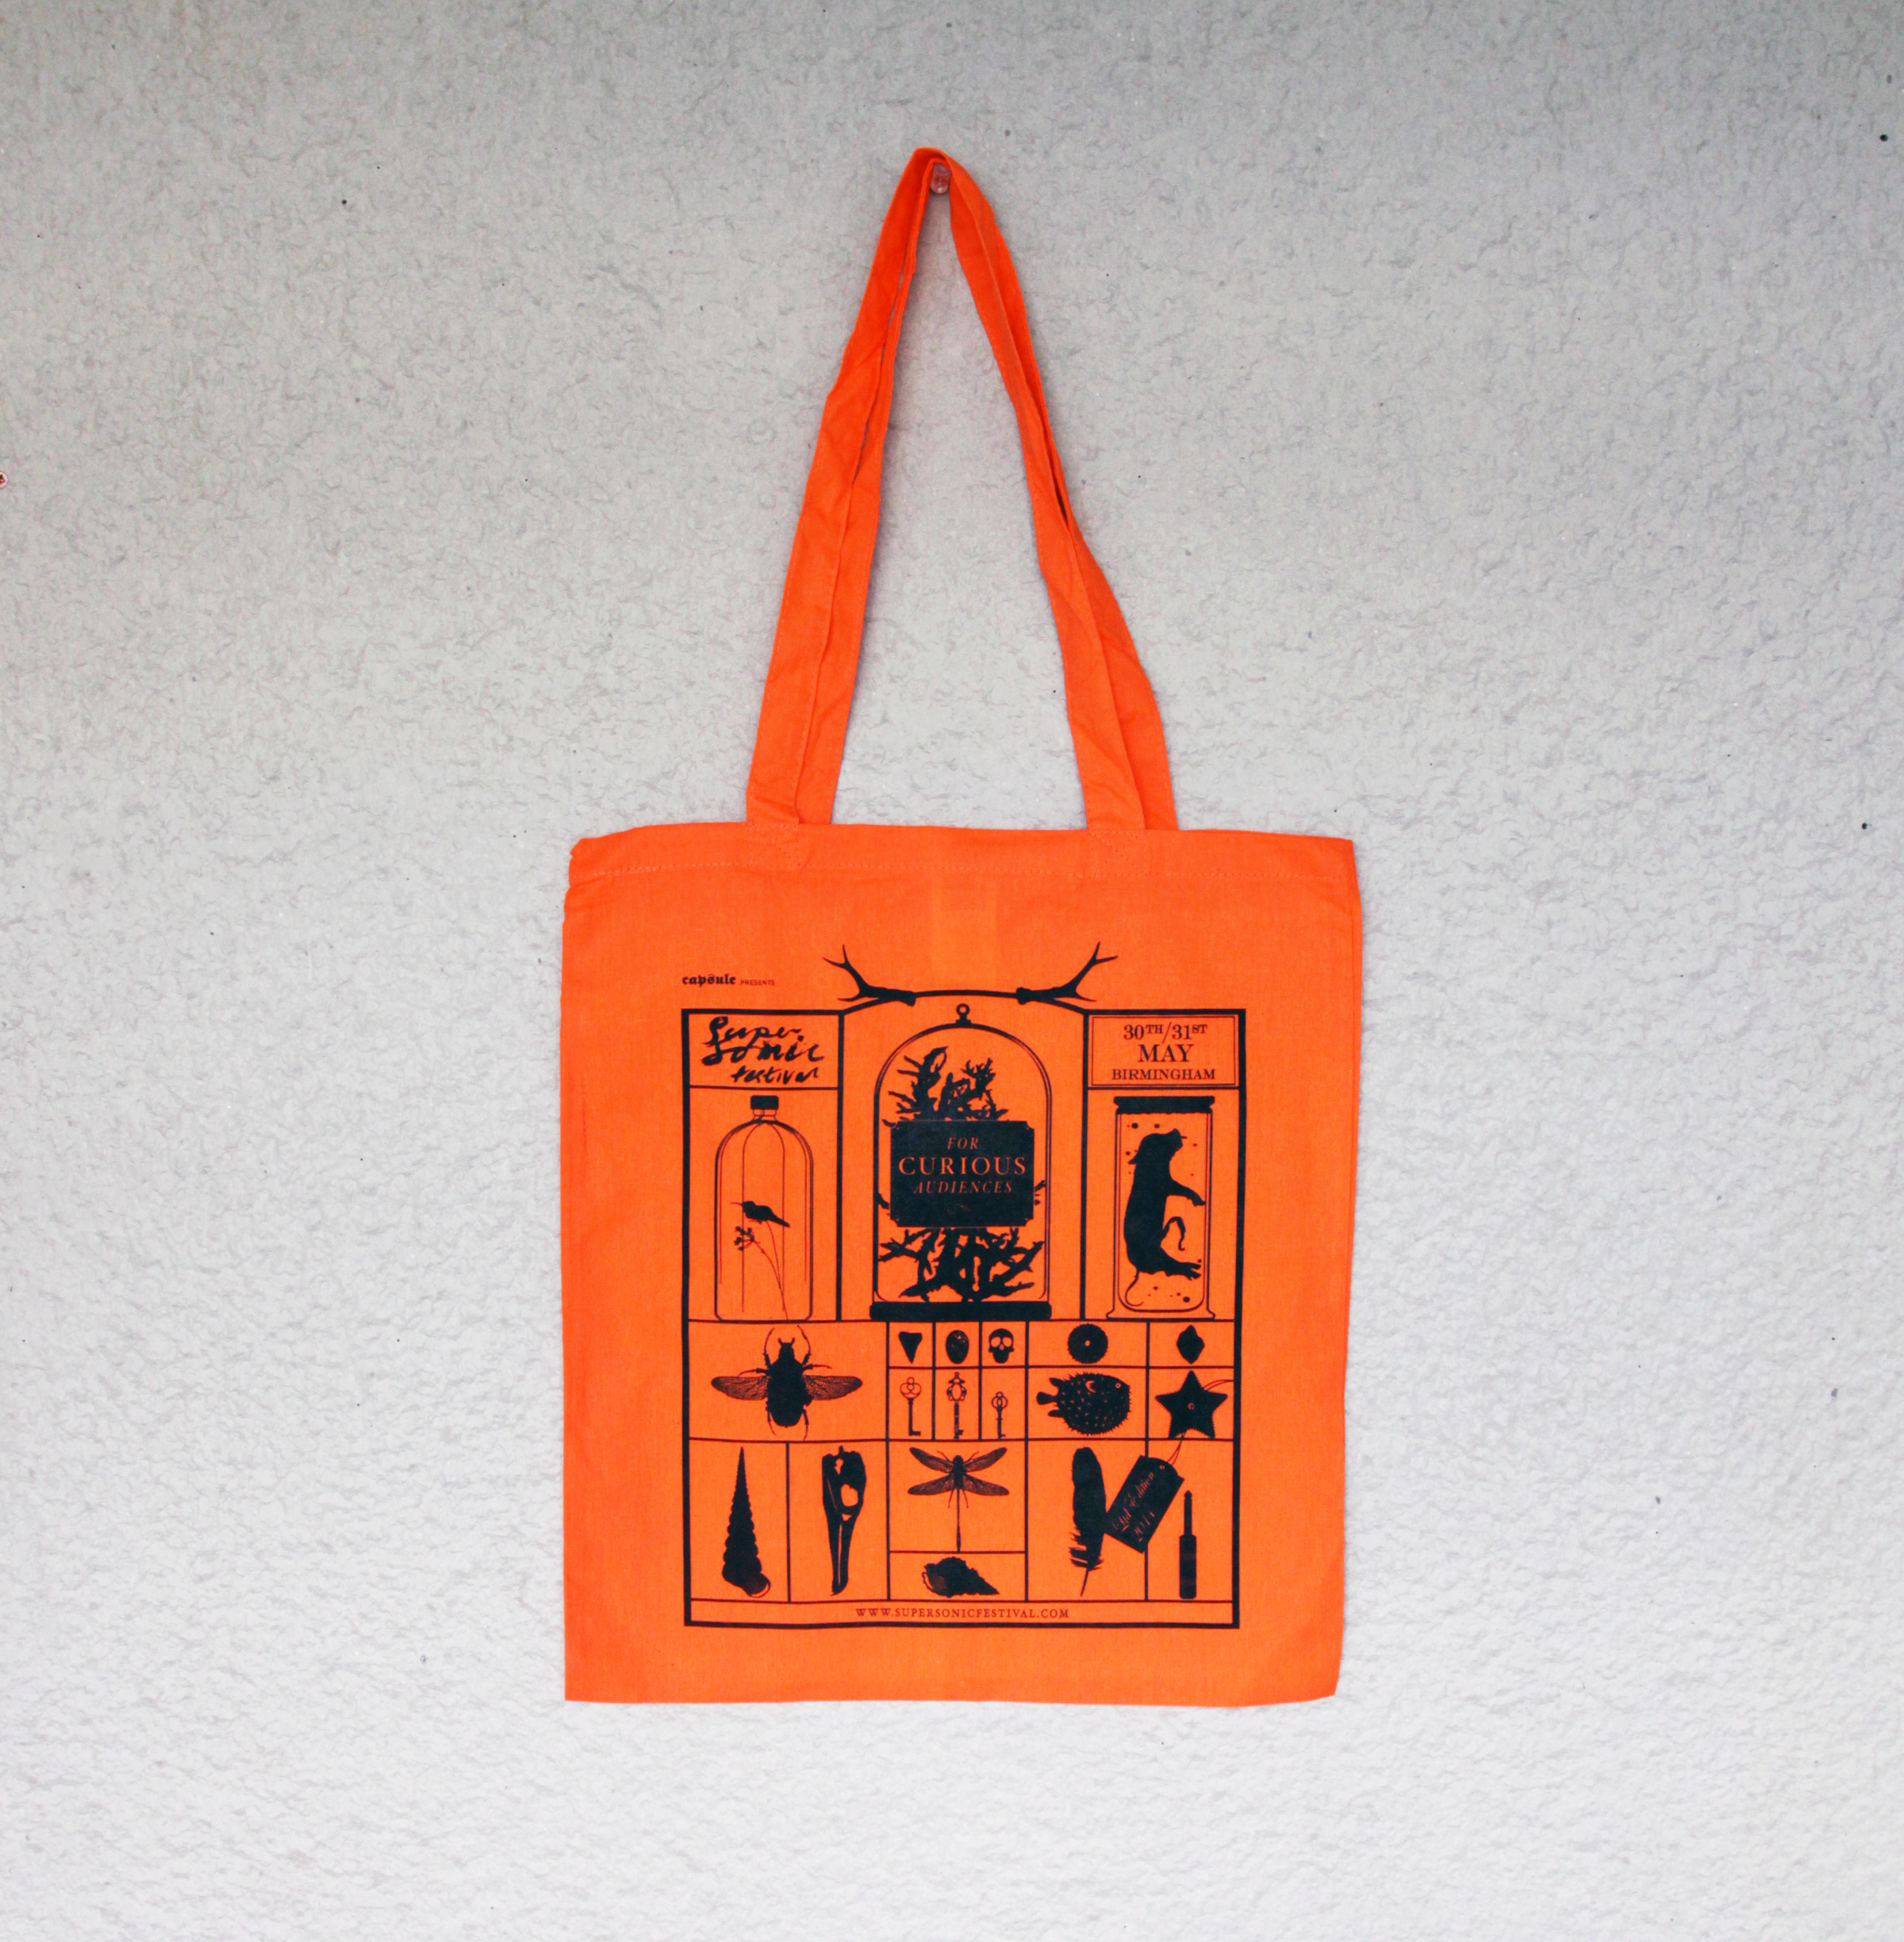 Supersonic 2014 tote bag